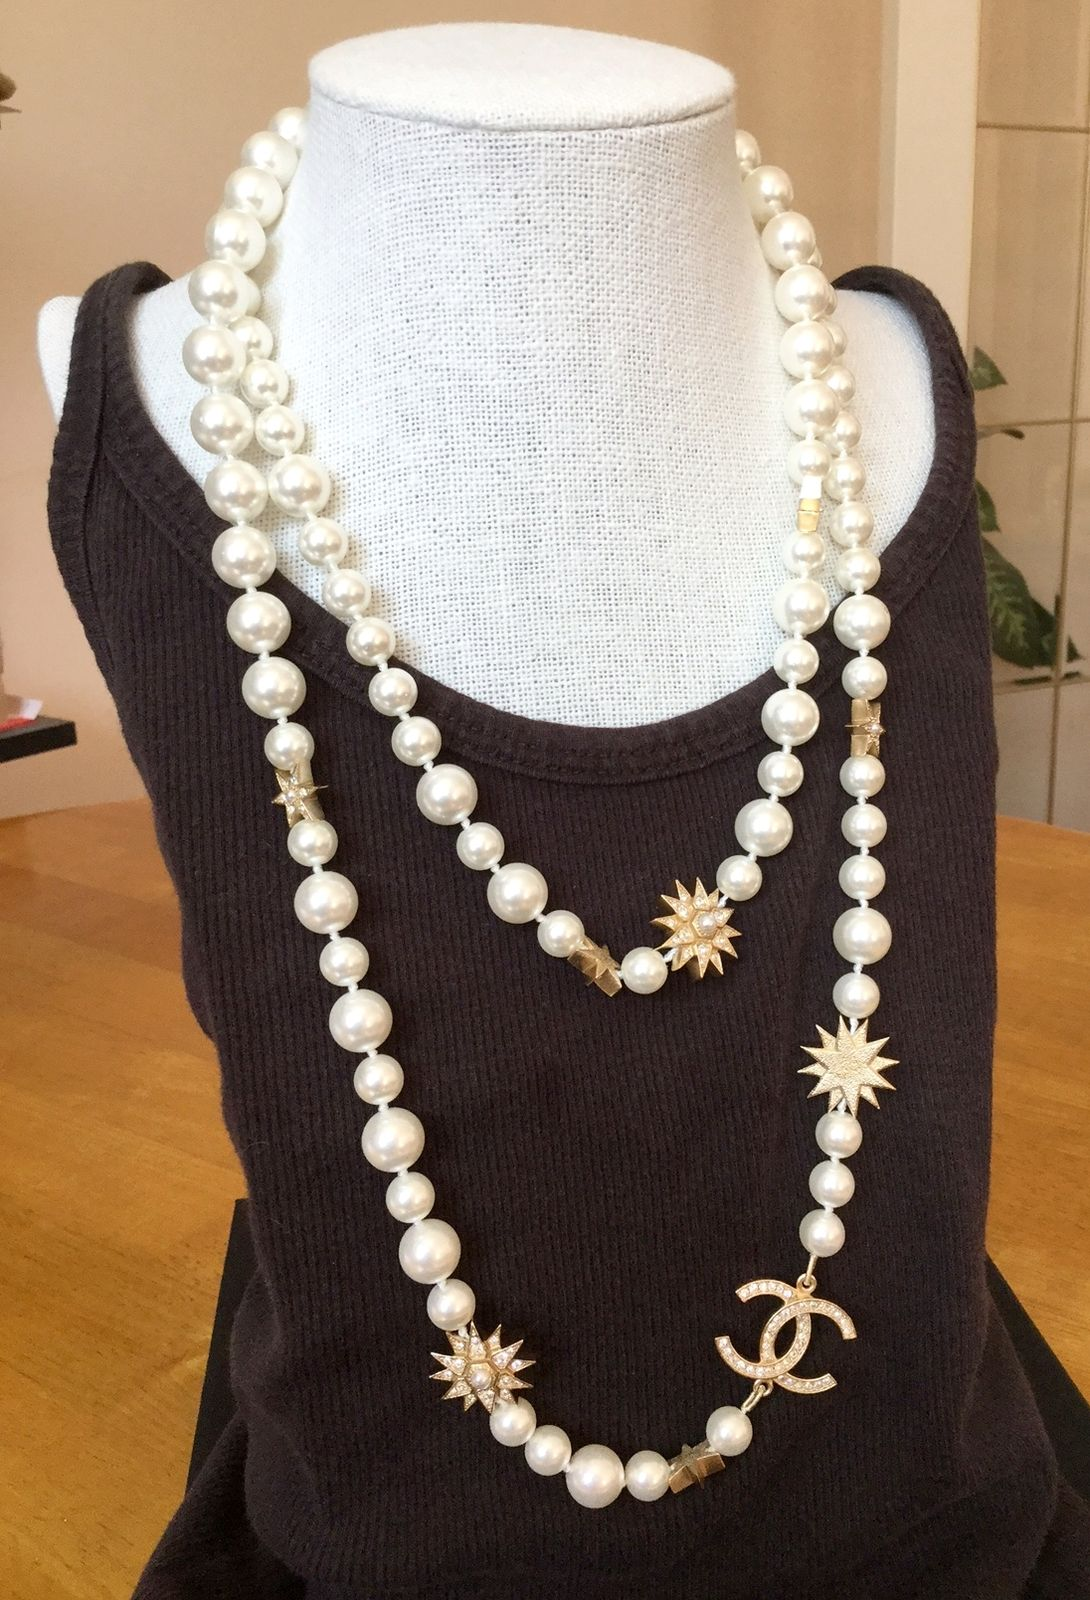 b0b791b1cc28 GORGEOUS NEW #CHANEL Salzburg Star Pearl Crystal Necklace Runway CC Gold  Chain